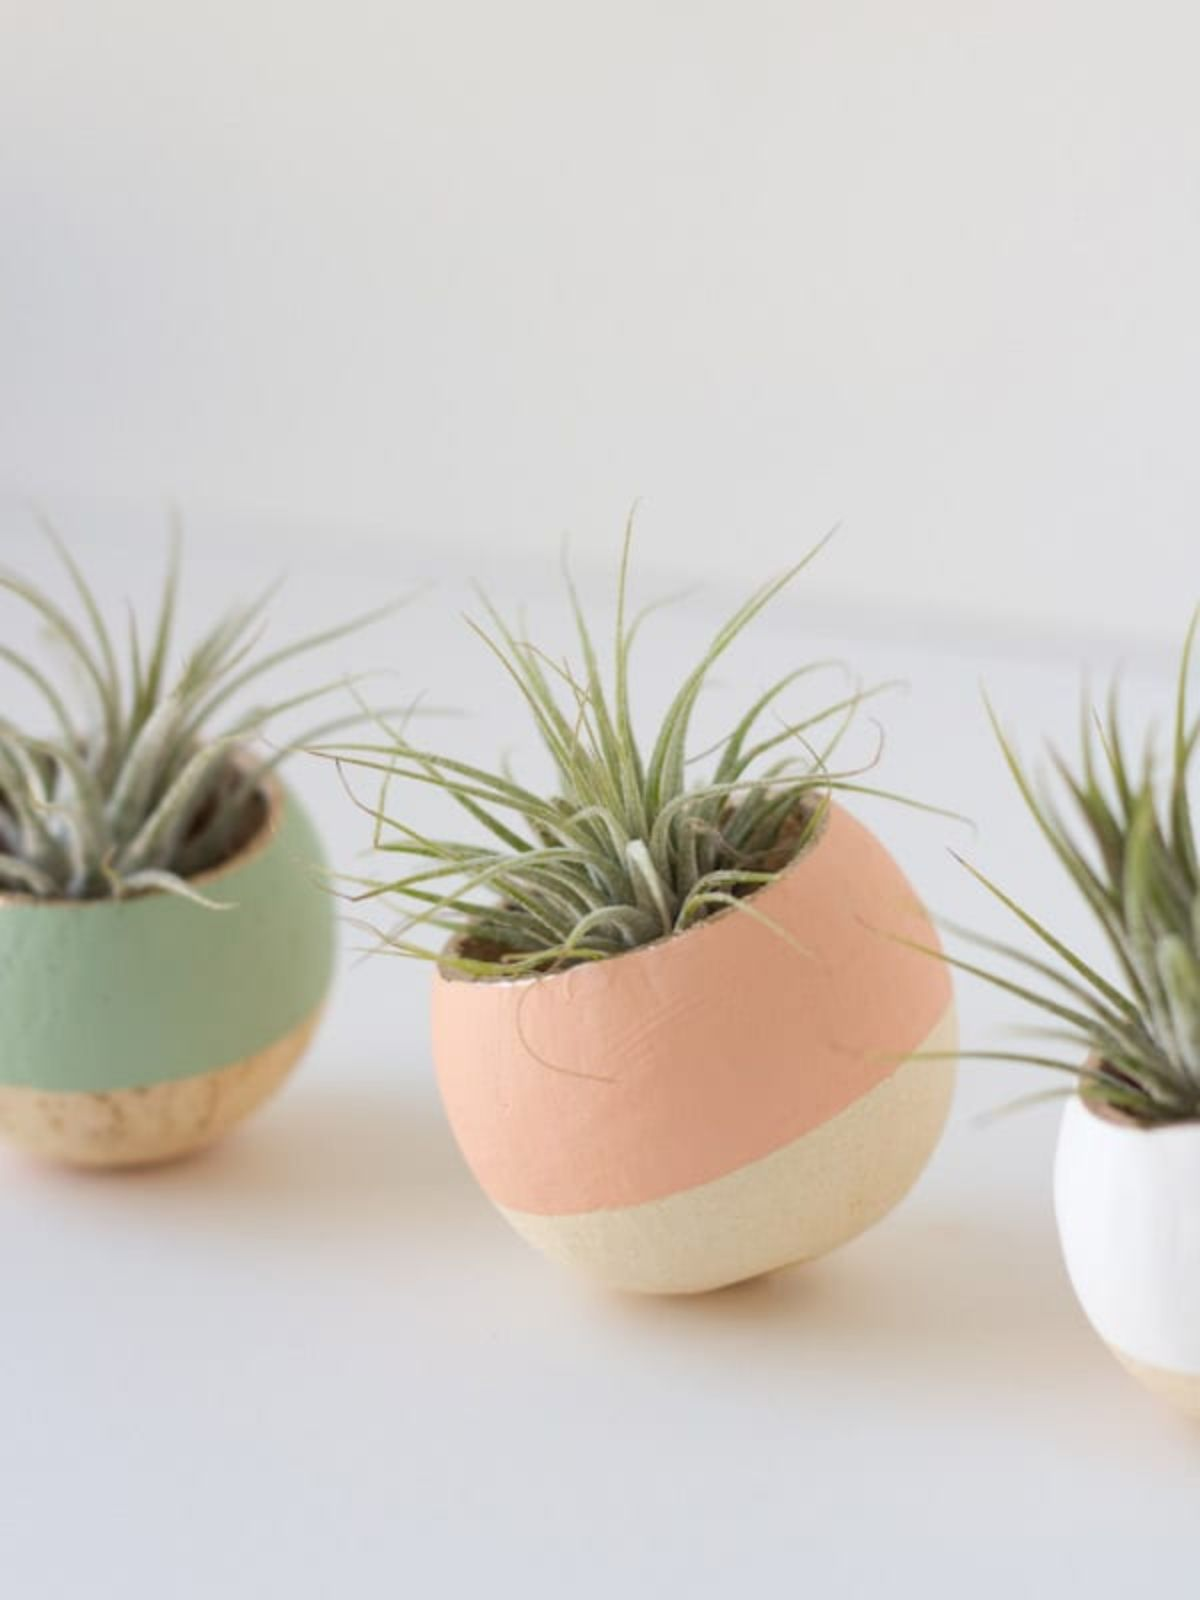 3 ball-shaped plant pots with colored rims sit on a white table. They have succulents planted in them.